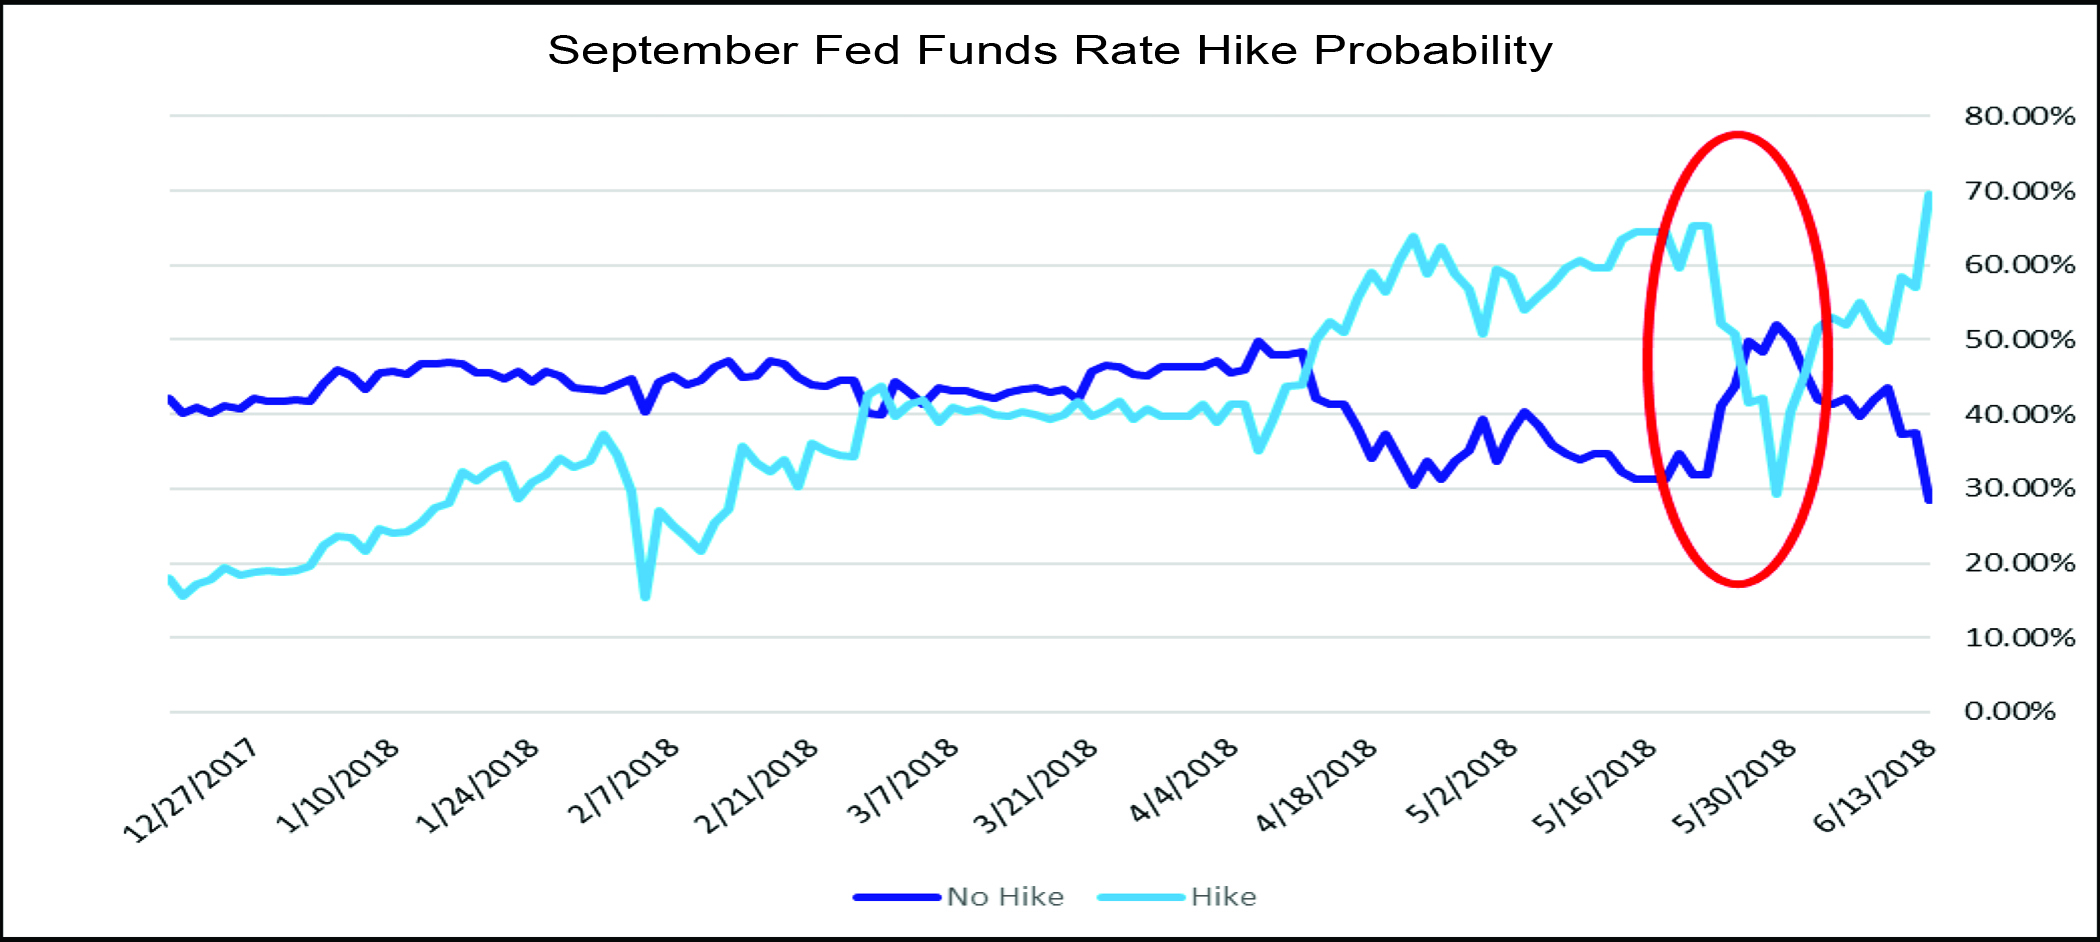 September Fed Funds Rate Hike Probability